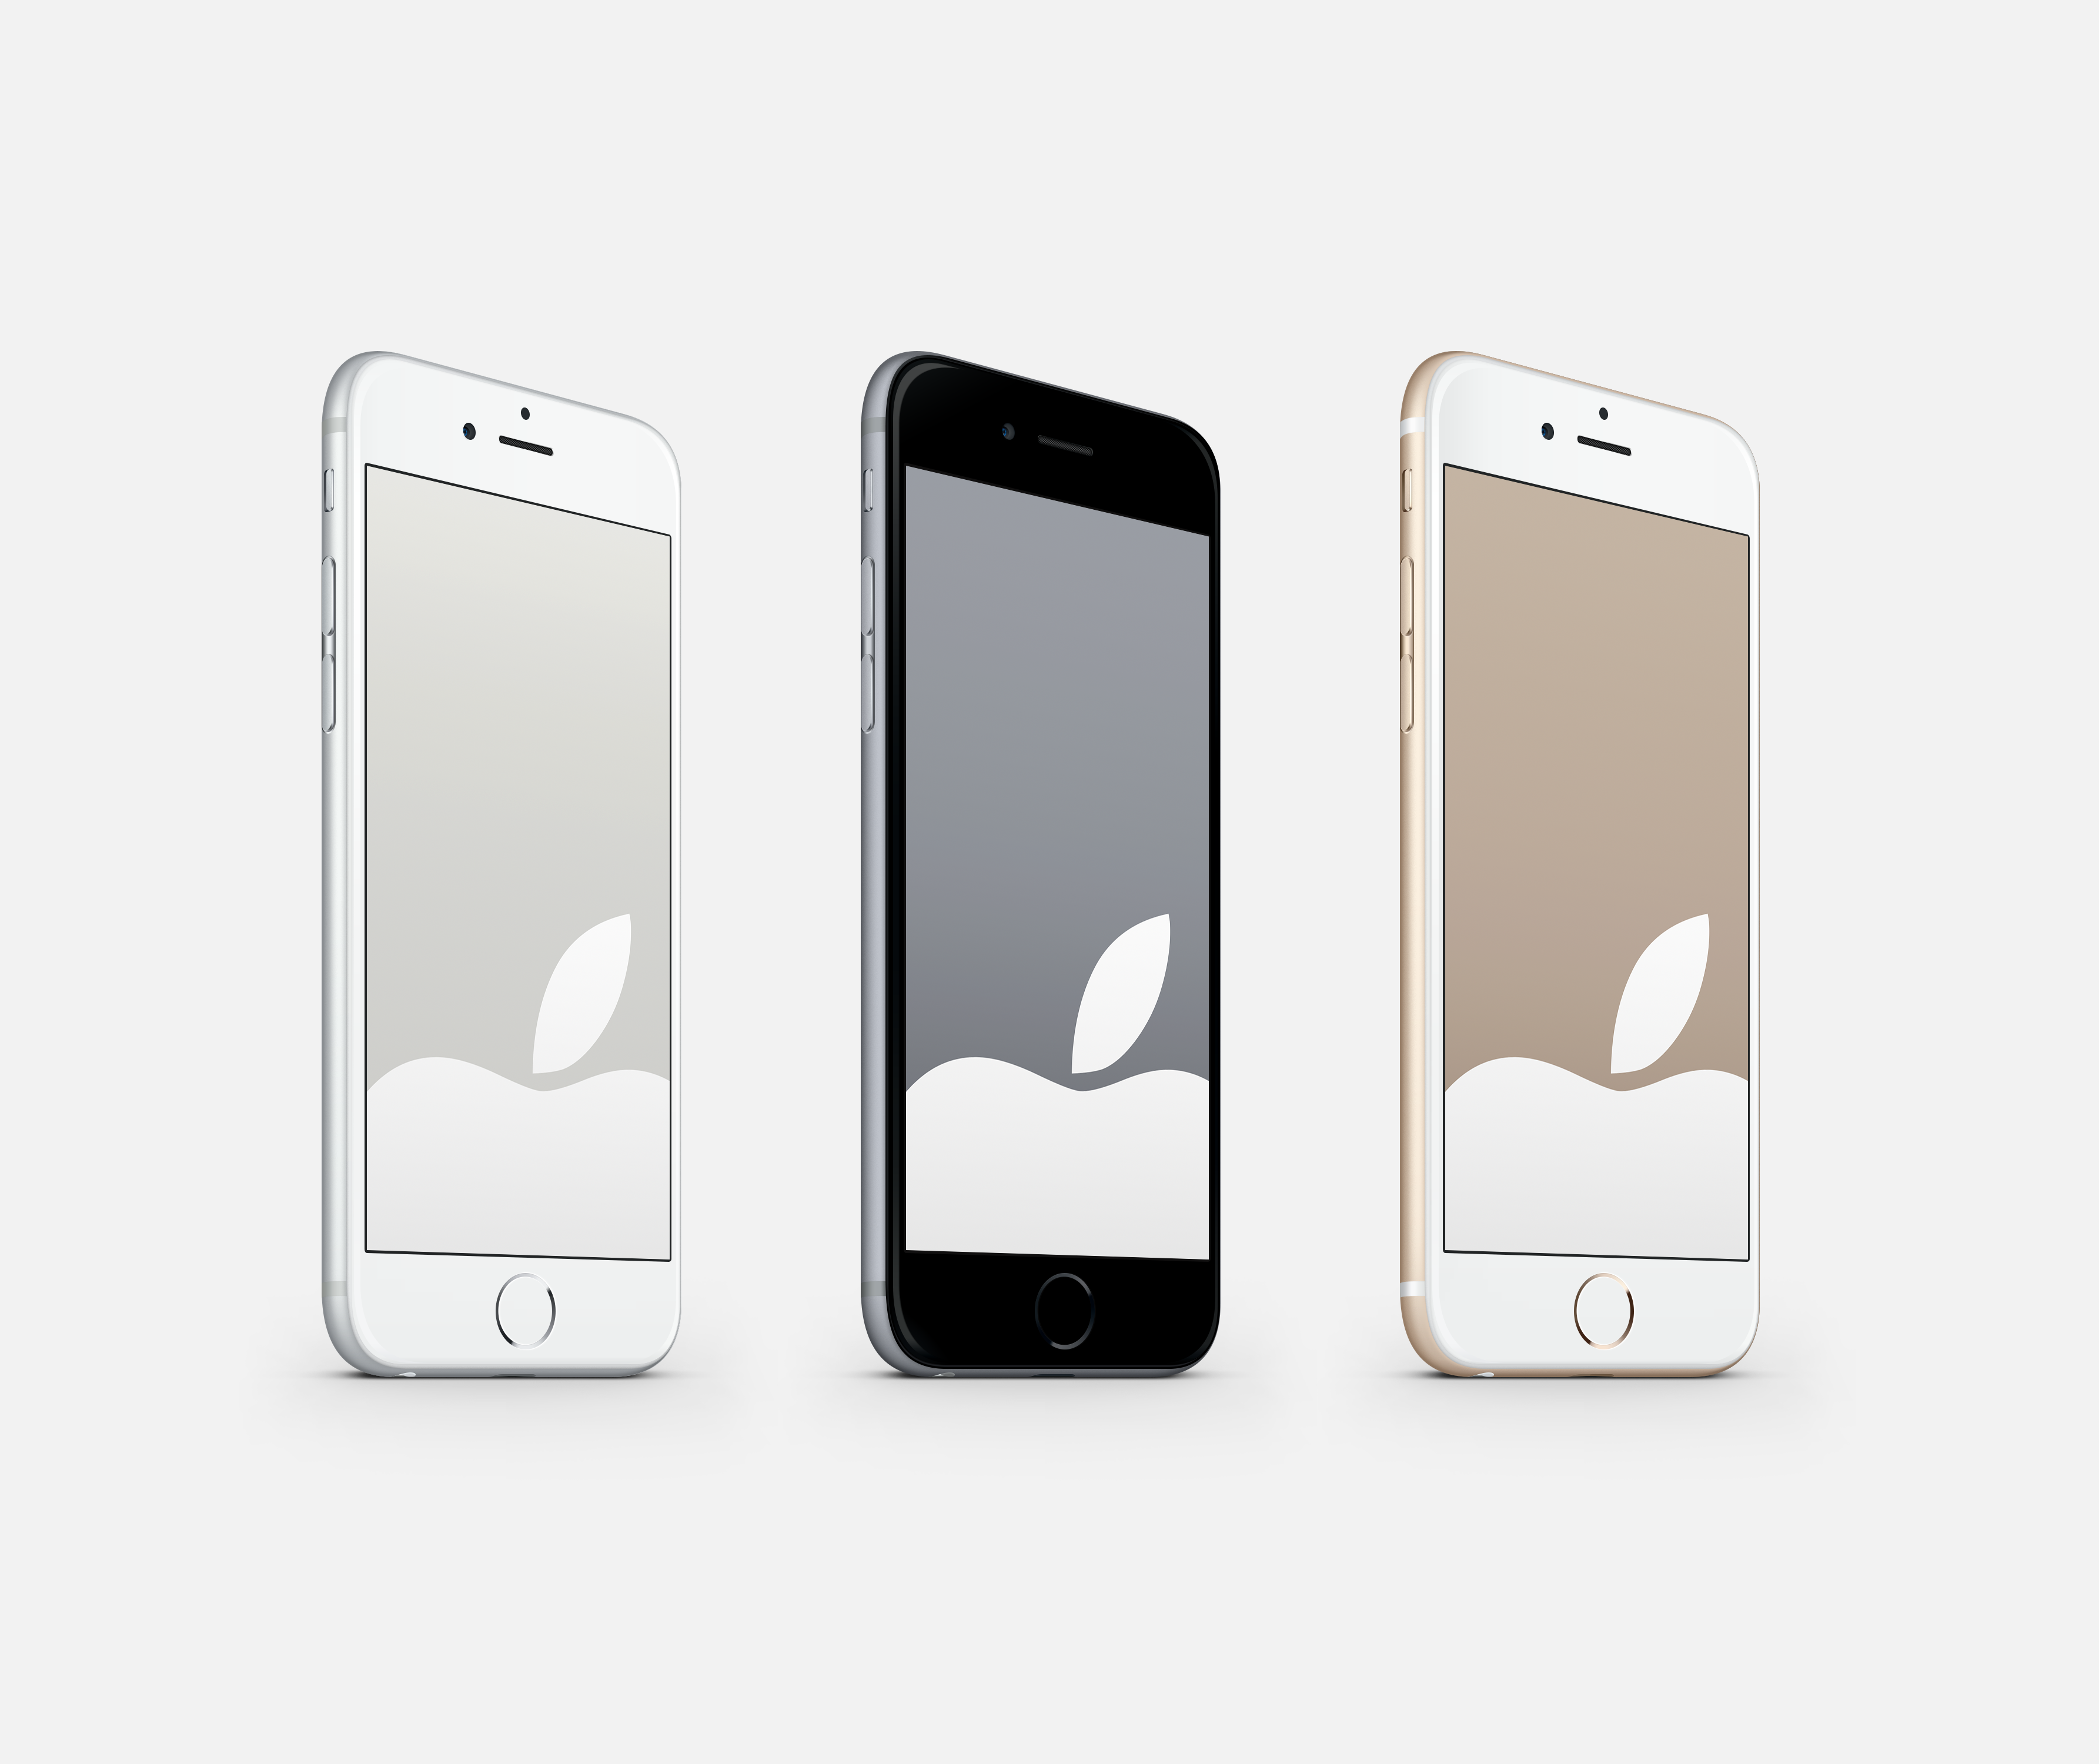 Iphone 6 M Wallpaper: Apple-Wallpapers Optimised For IPhone 6 And 6 Plus By